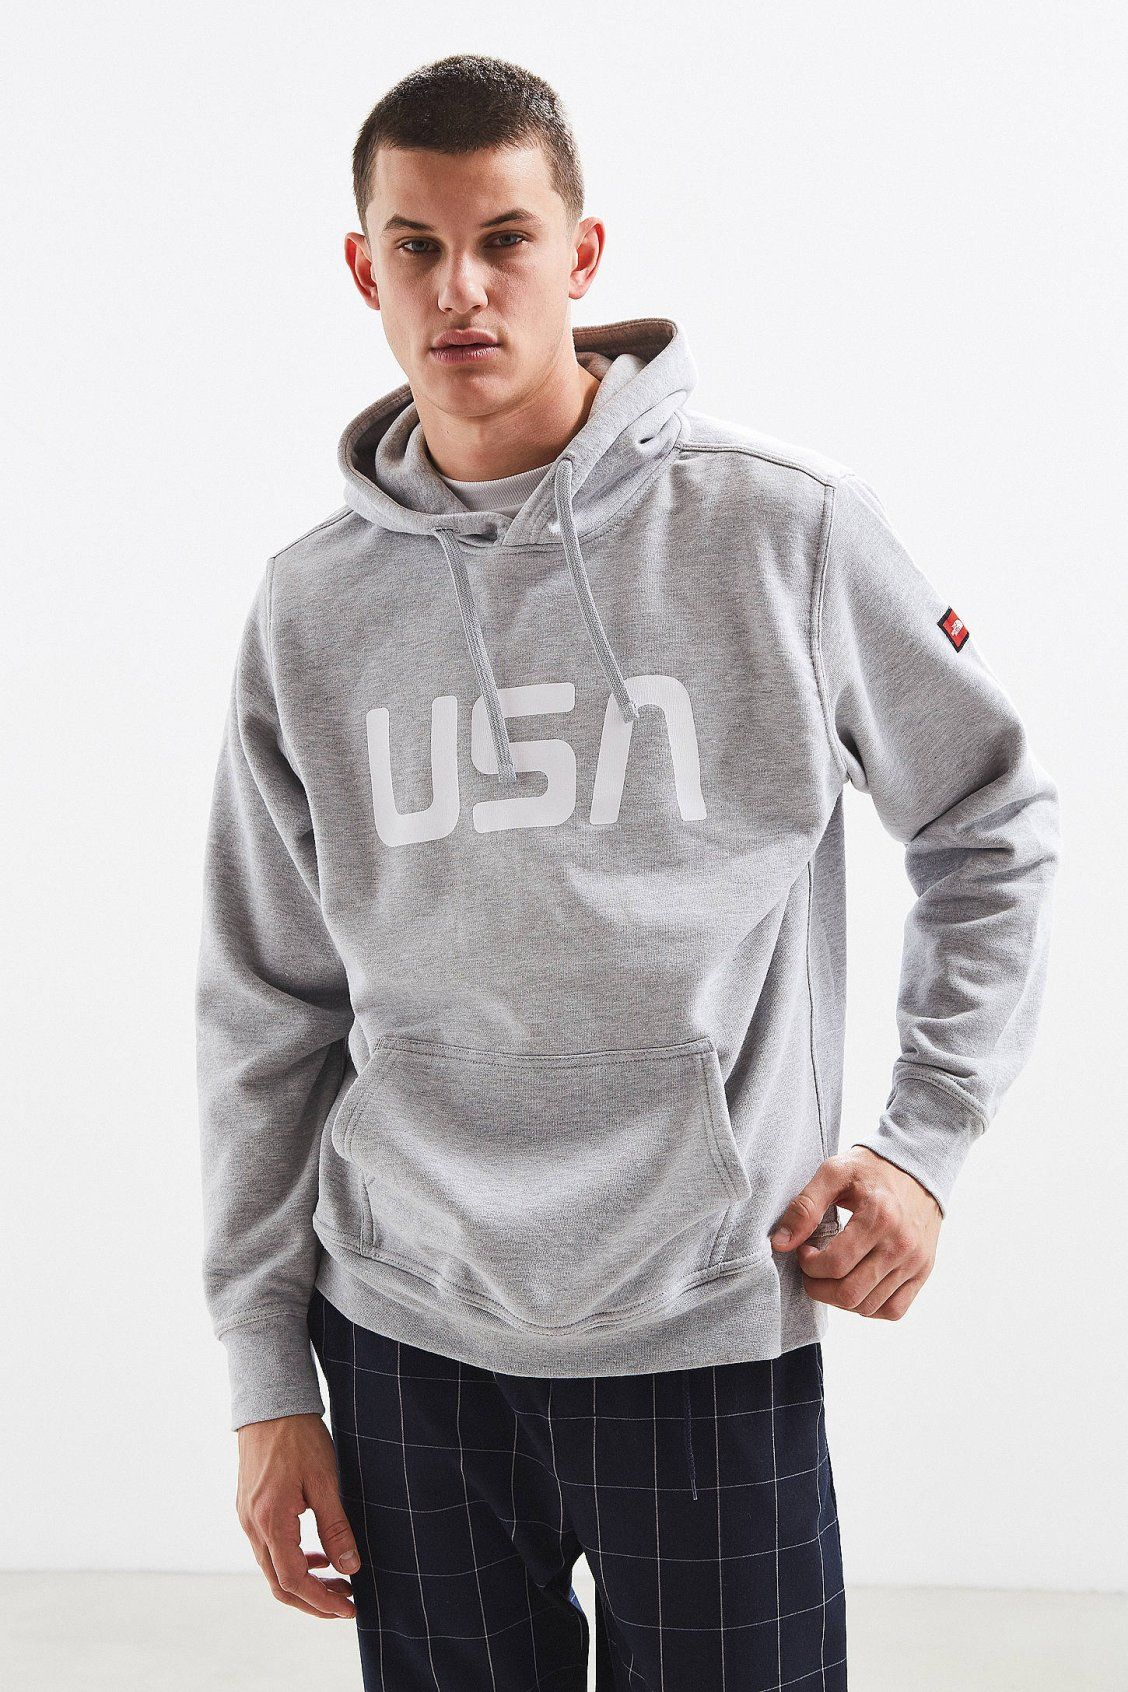 The North Face USA Hoodie Sweatshirt | New Arrivals